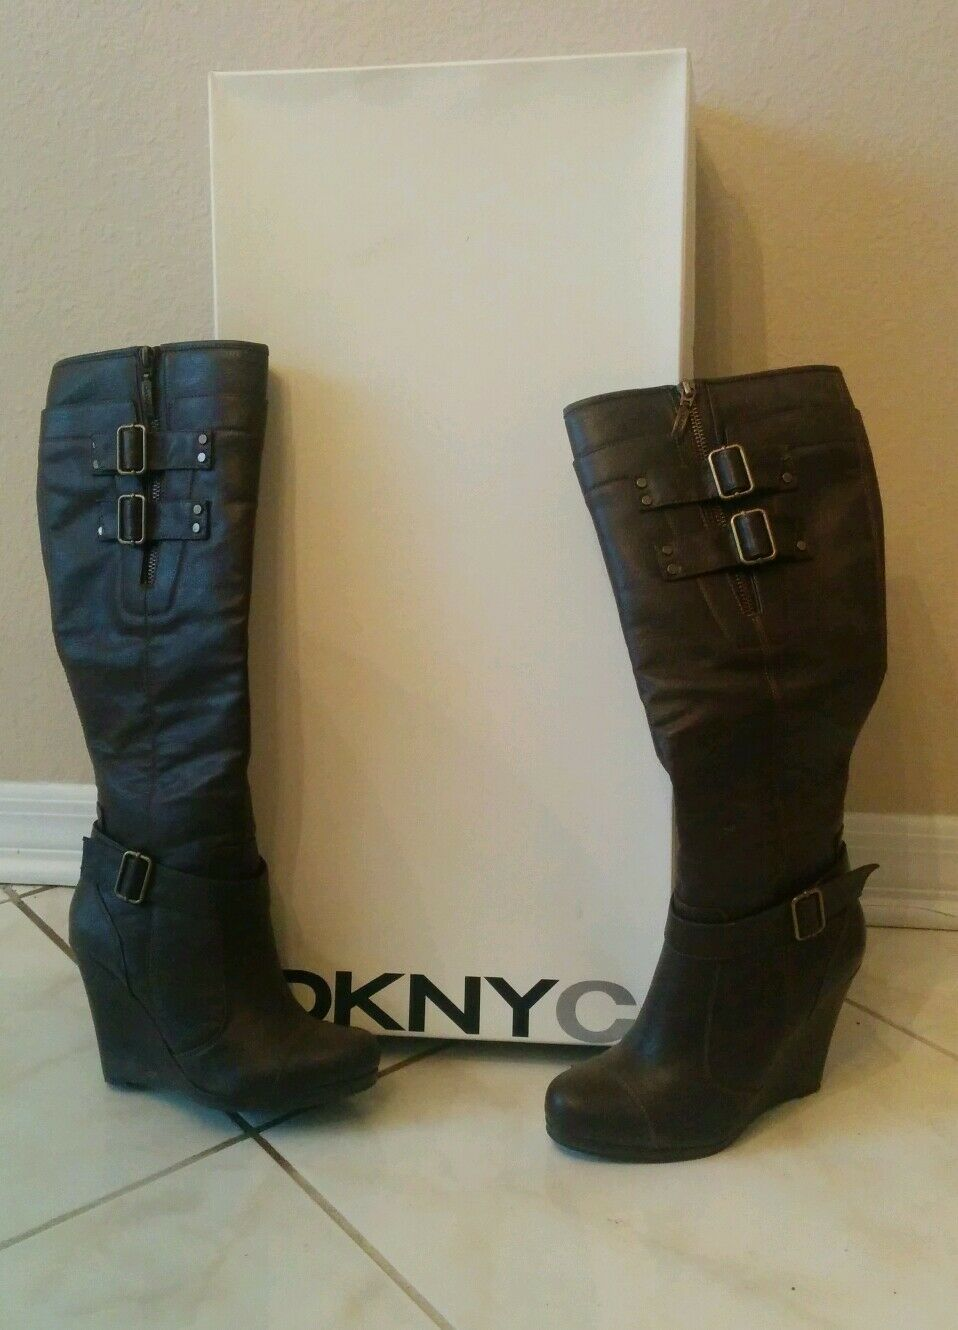 DKNYC Polly   Polly chocolate Stiefel. Wedge Braun 7 e2ee3c